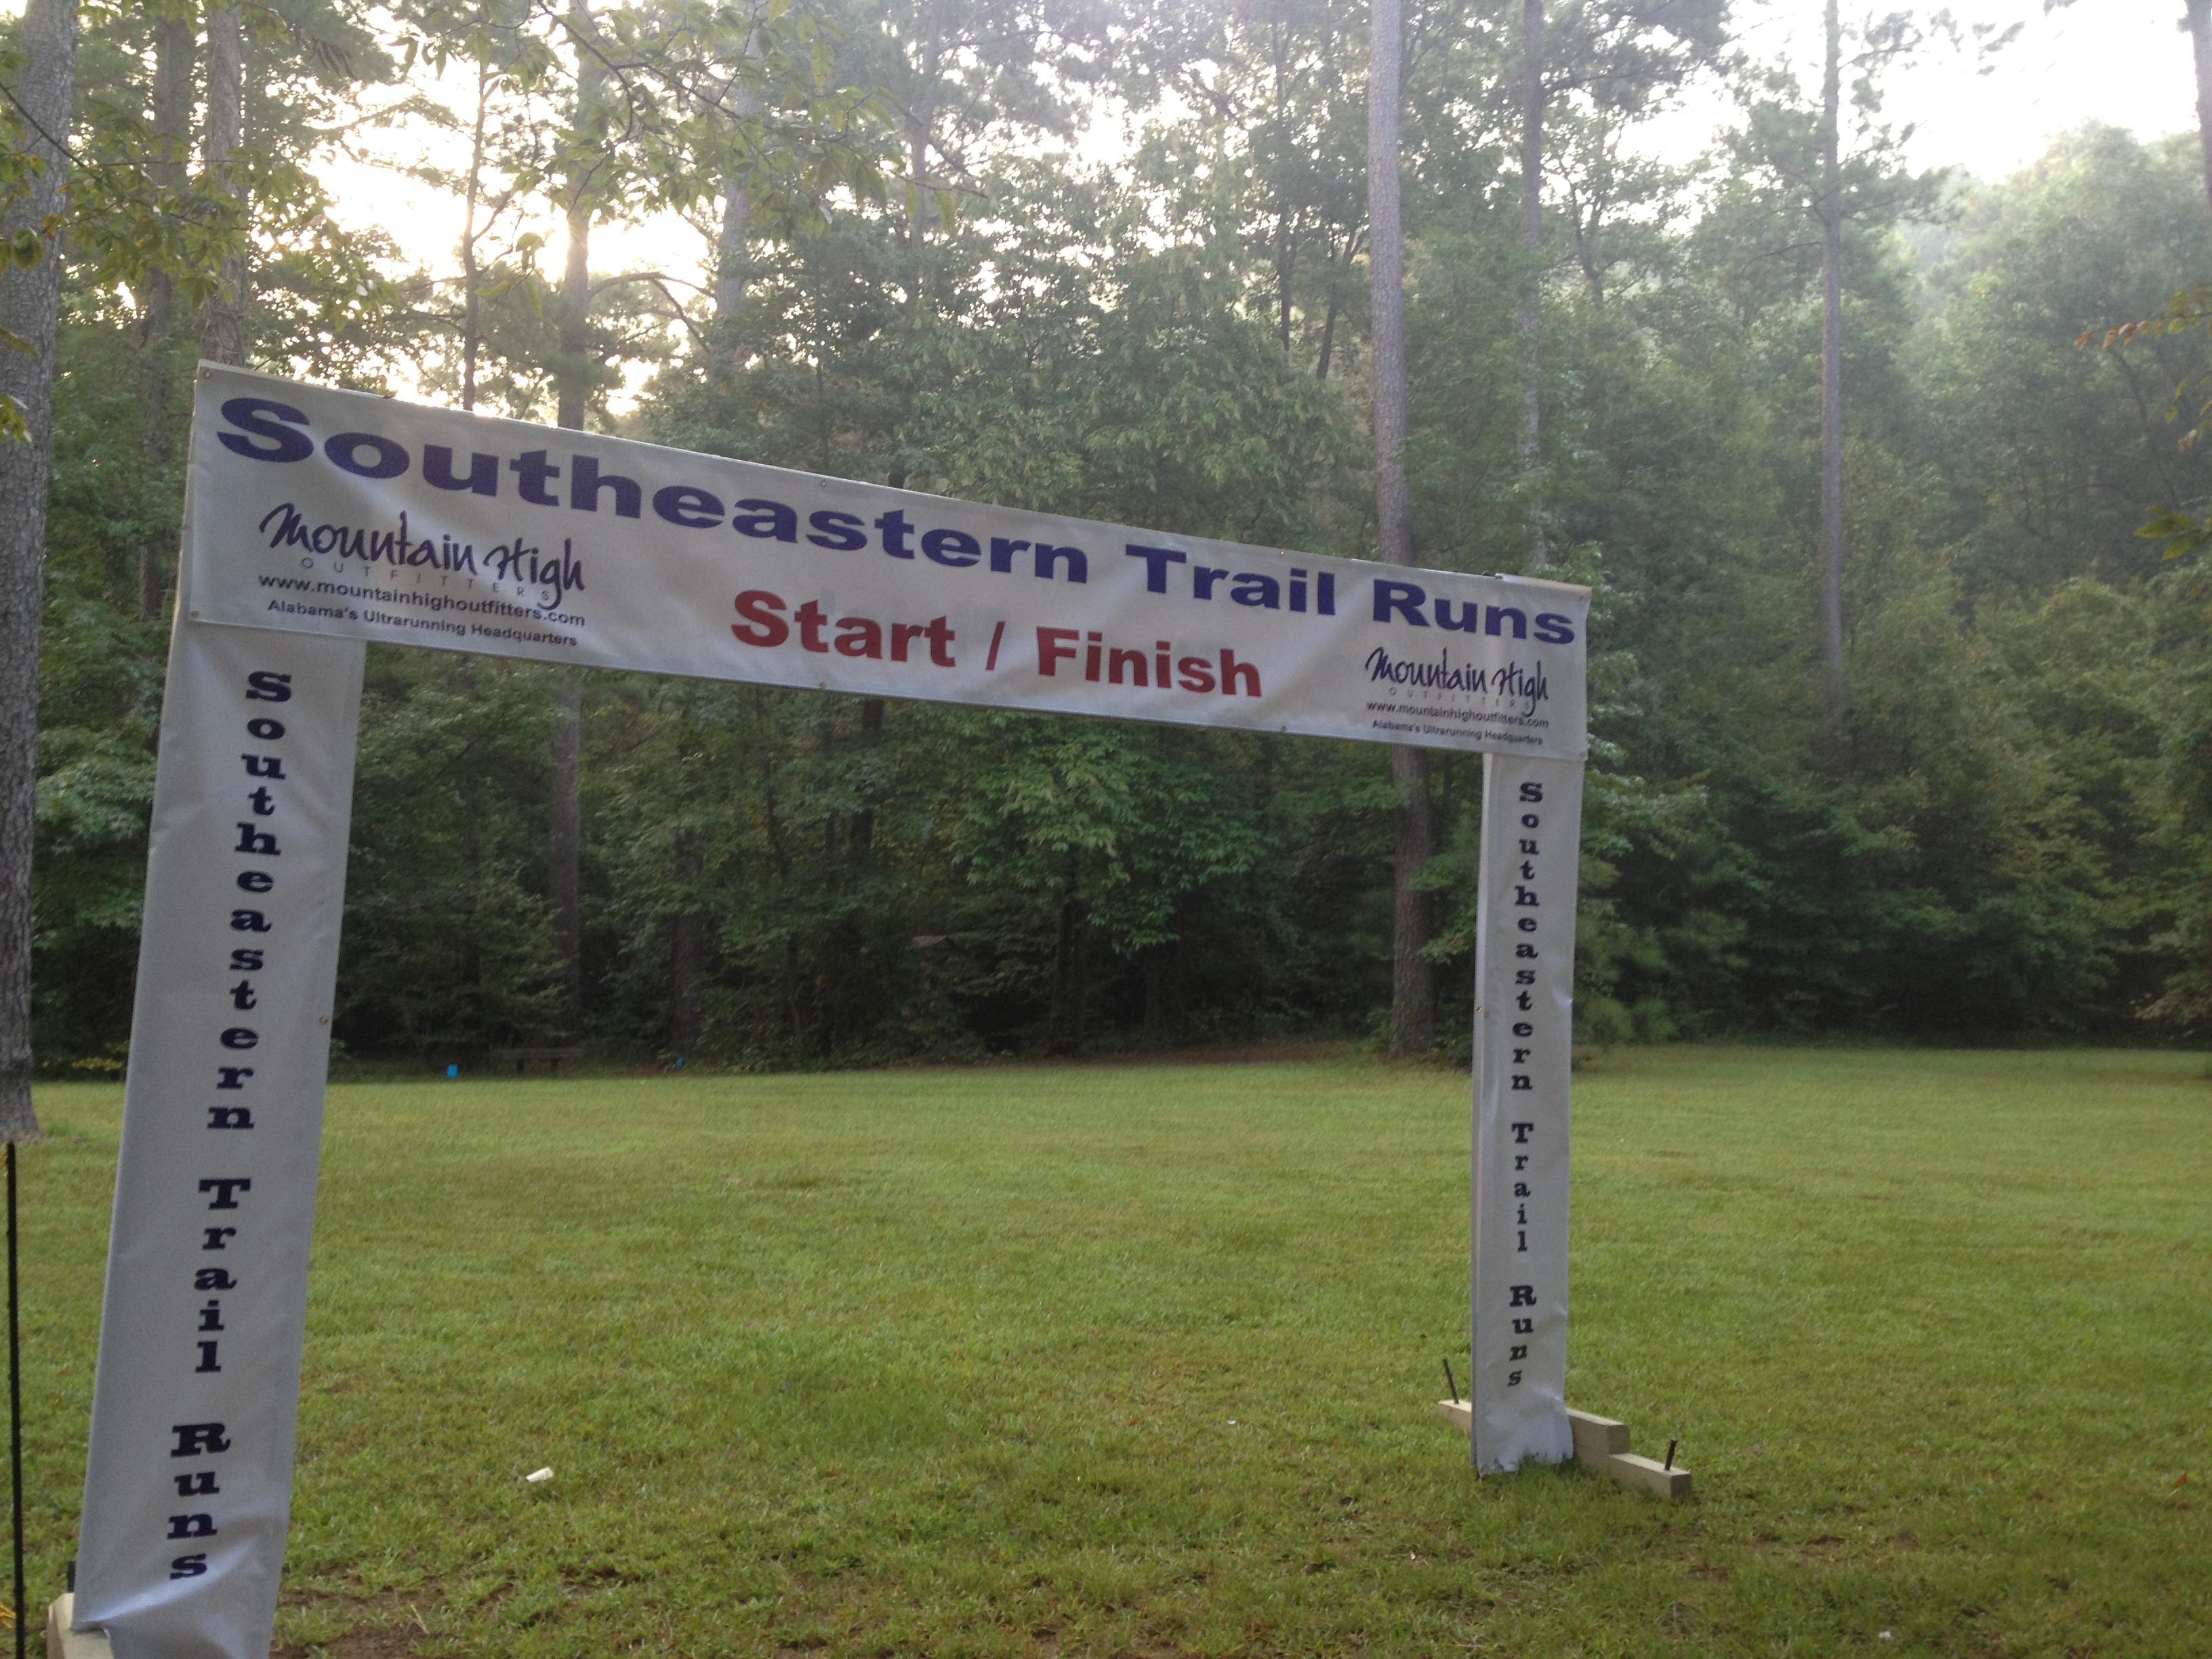 BTC Free Race, Birmingham Track Club, Oak Mountain State Park, Southeastern Trail Series, David Tosch, trail running, ultra running